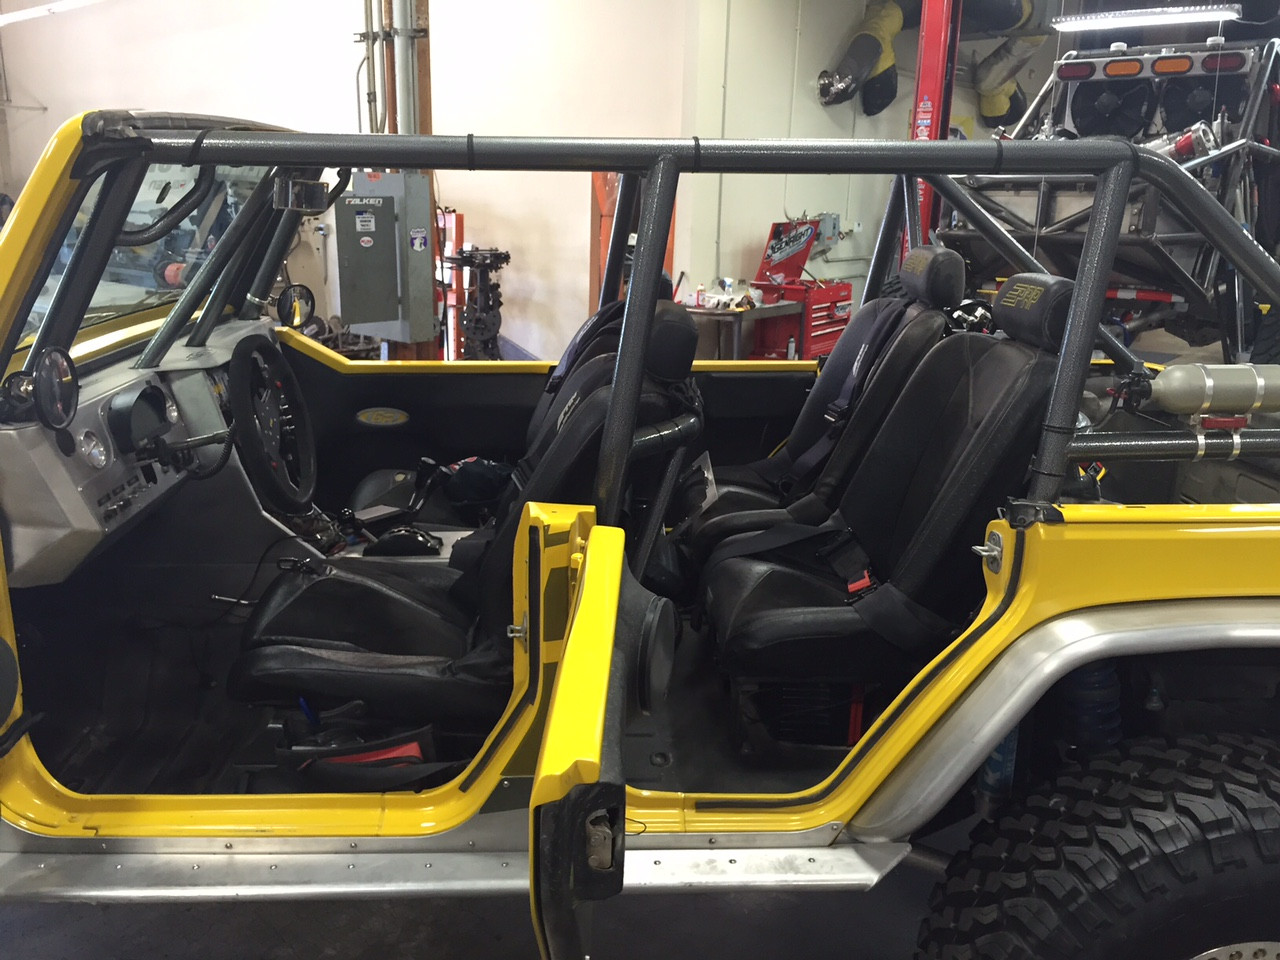 Here you can see the kit installed in a JK front & rear with PRP seats